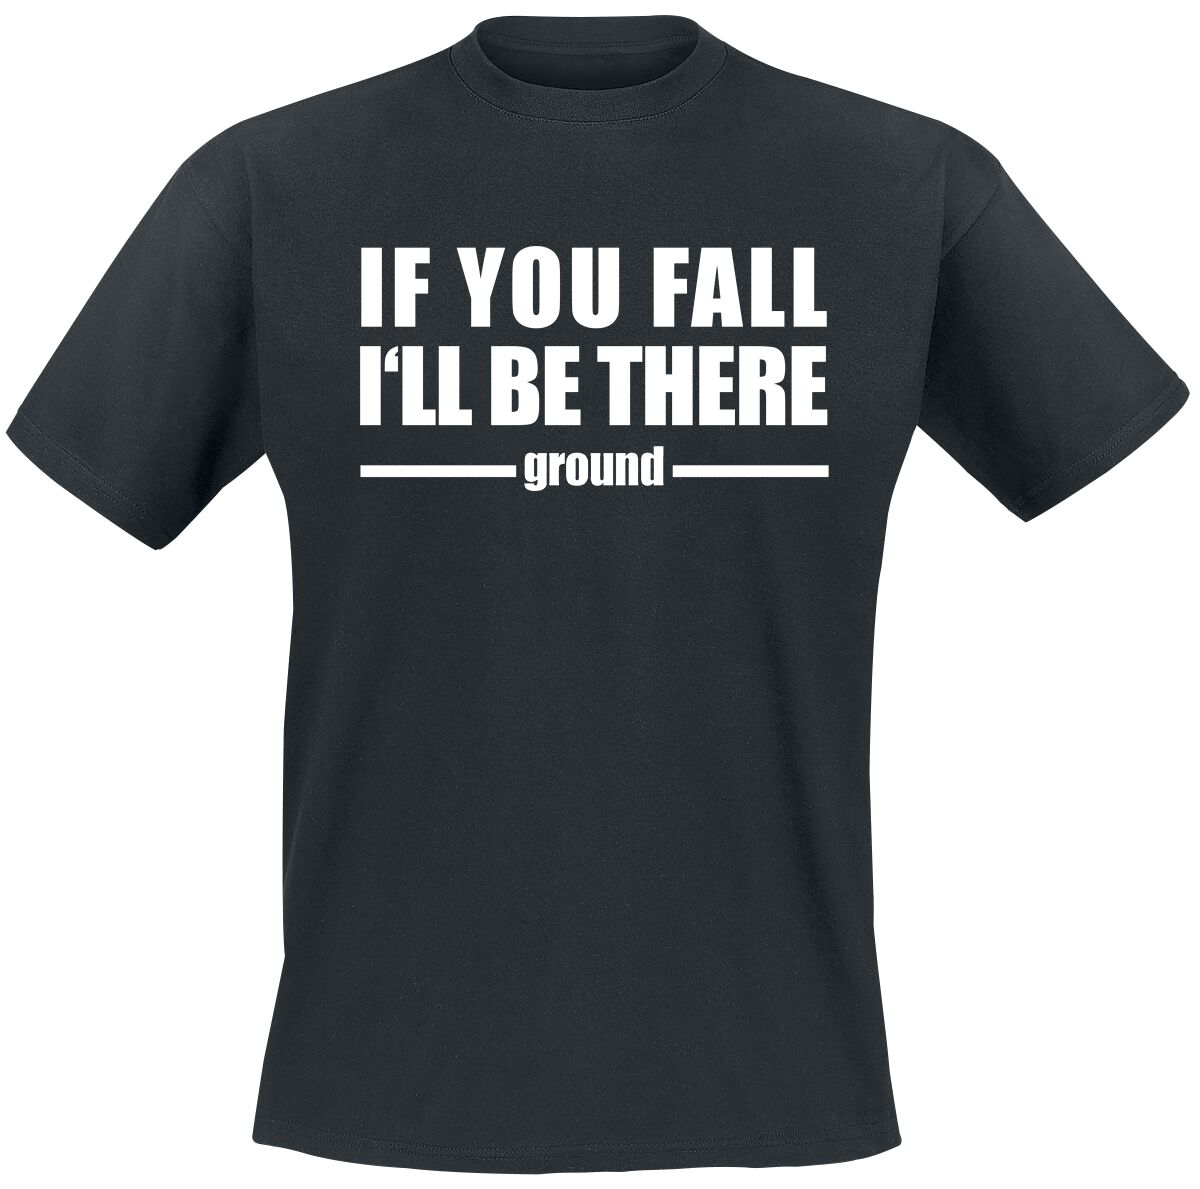 Fun Shirts - Koszulki - T-Shirt If You Fall I'll Be There - Ground T-Shirt czarny - 372203